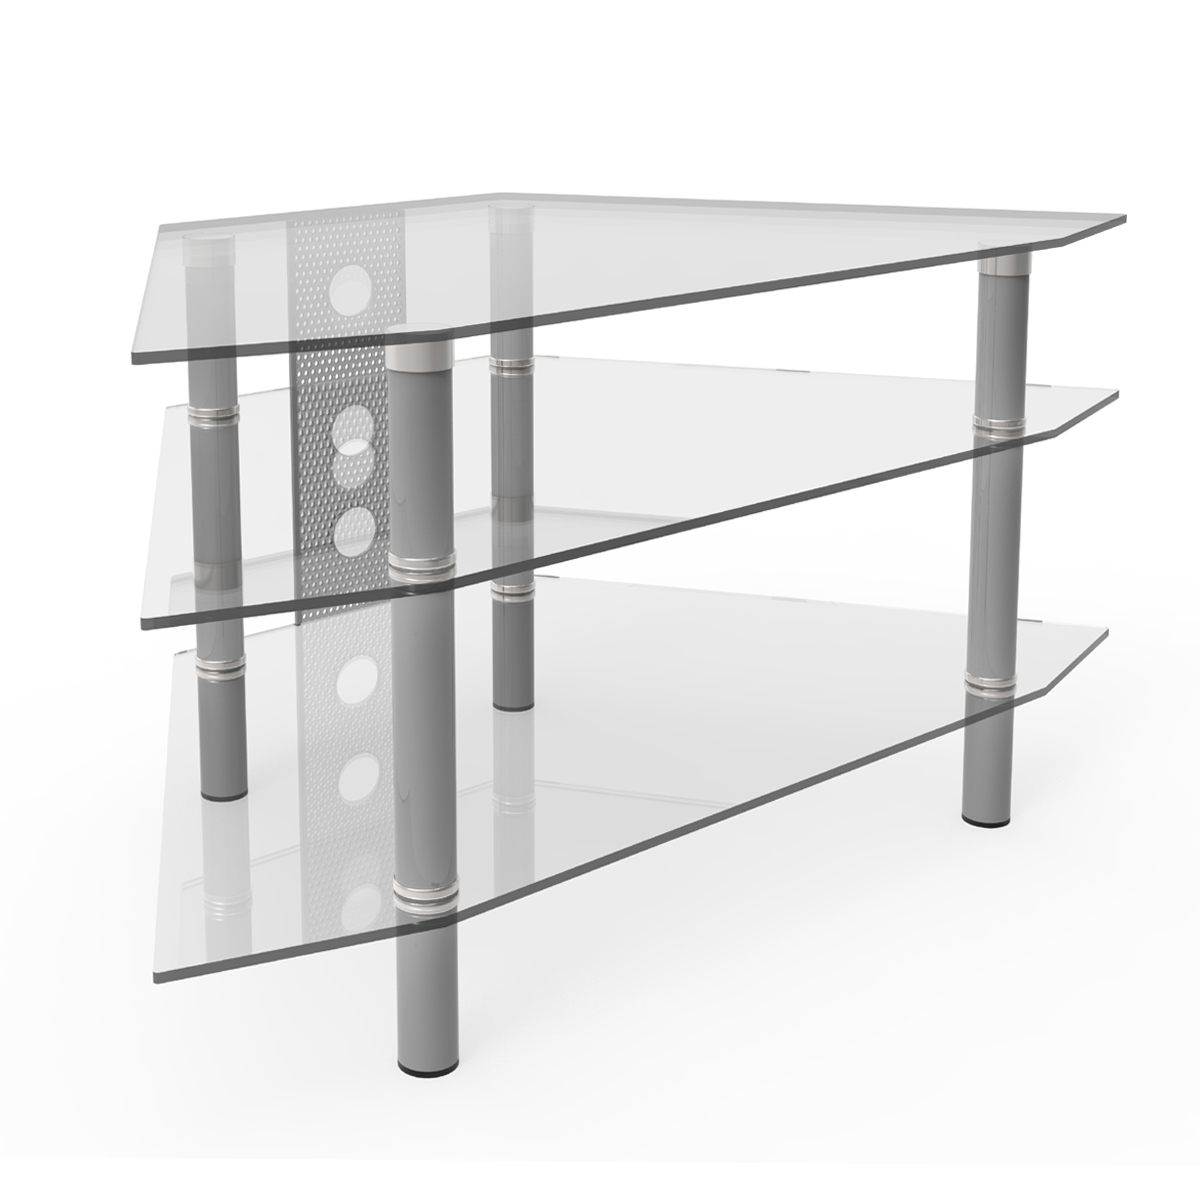 Ruby 44 Inch Corner Glass Tv Stand Silver And Clear Glass Inside Tv Stands With Cable Management (View 13 of 20)